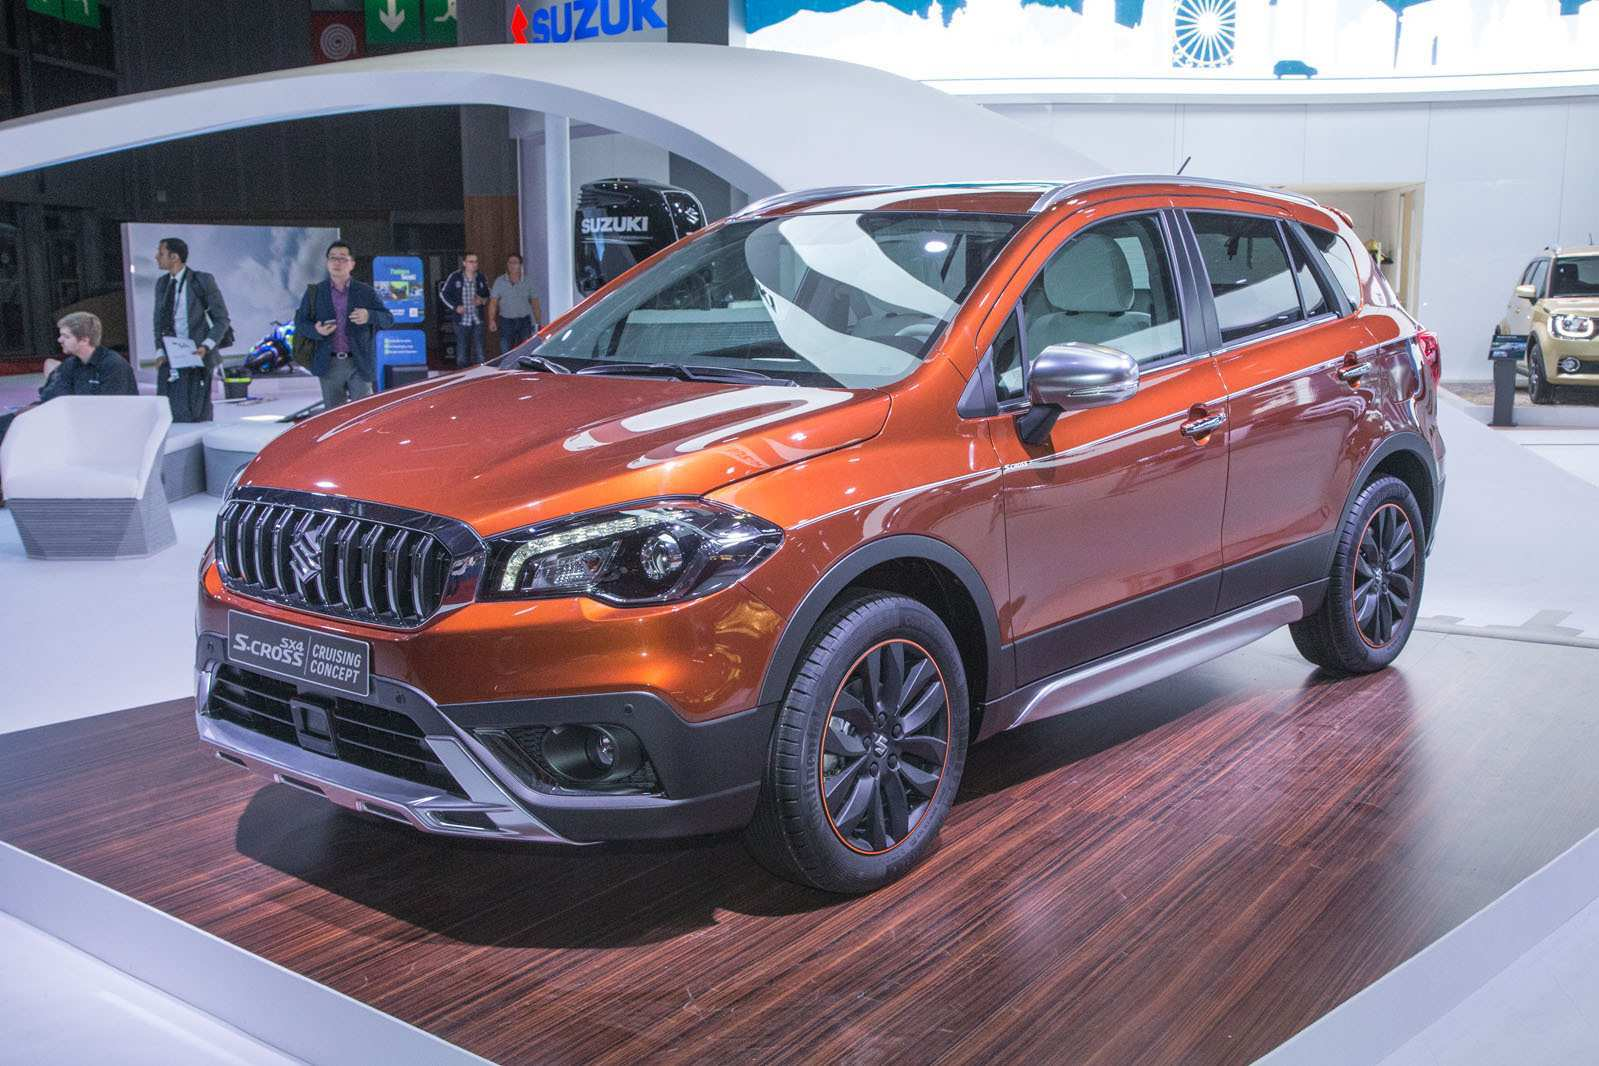 20 All New 2020 Suzuki Sx4 Interior